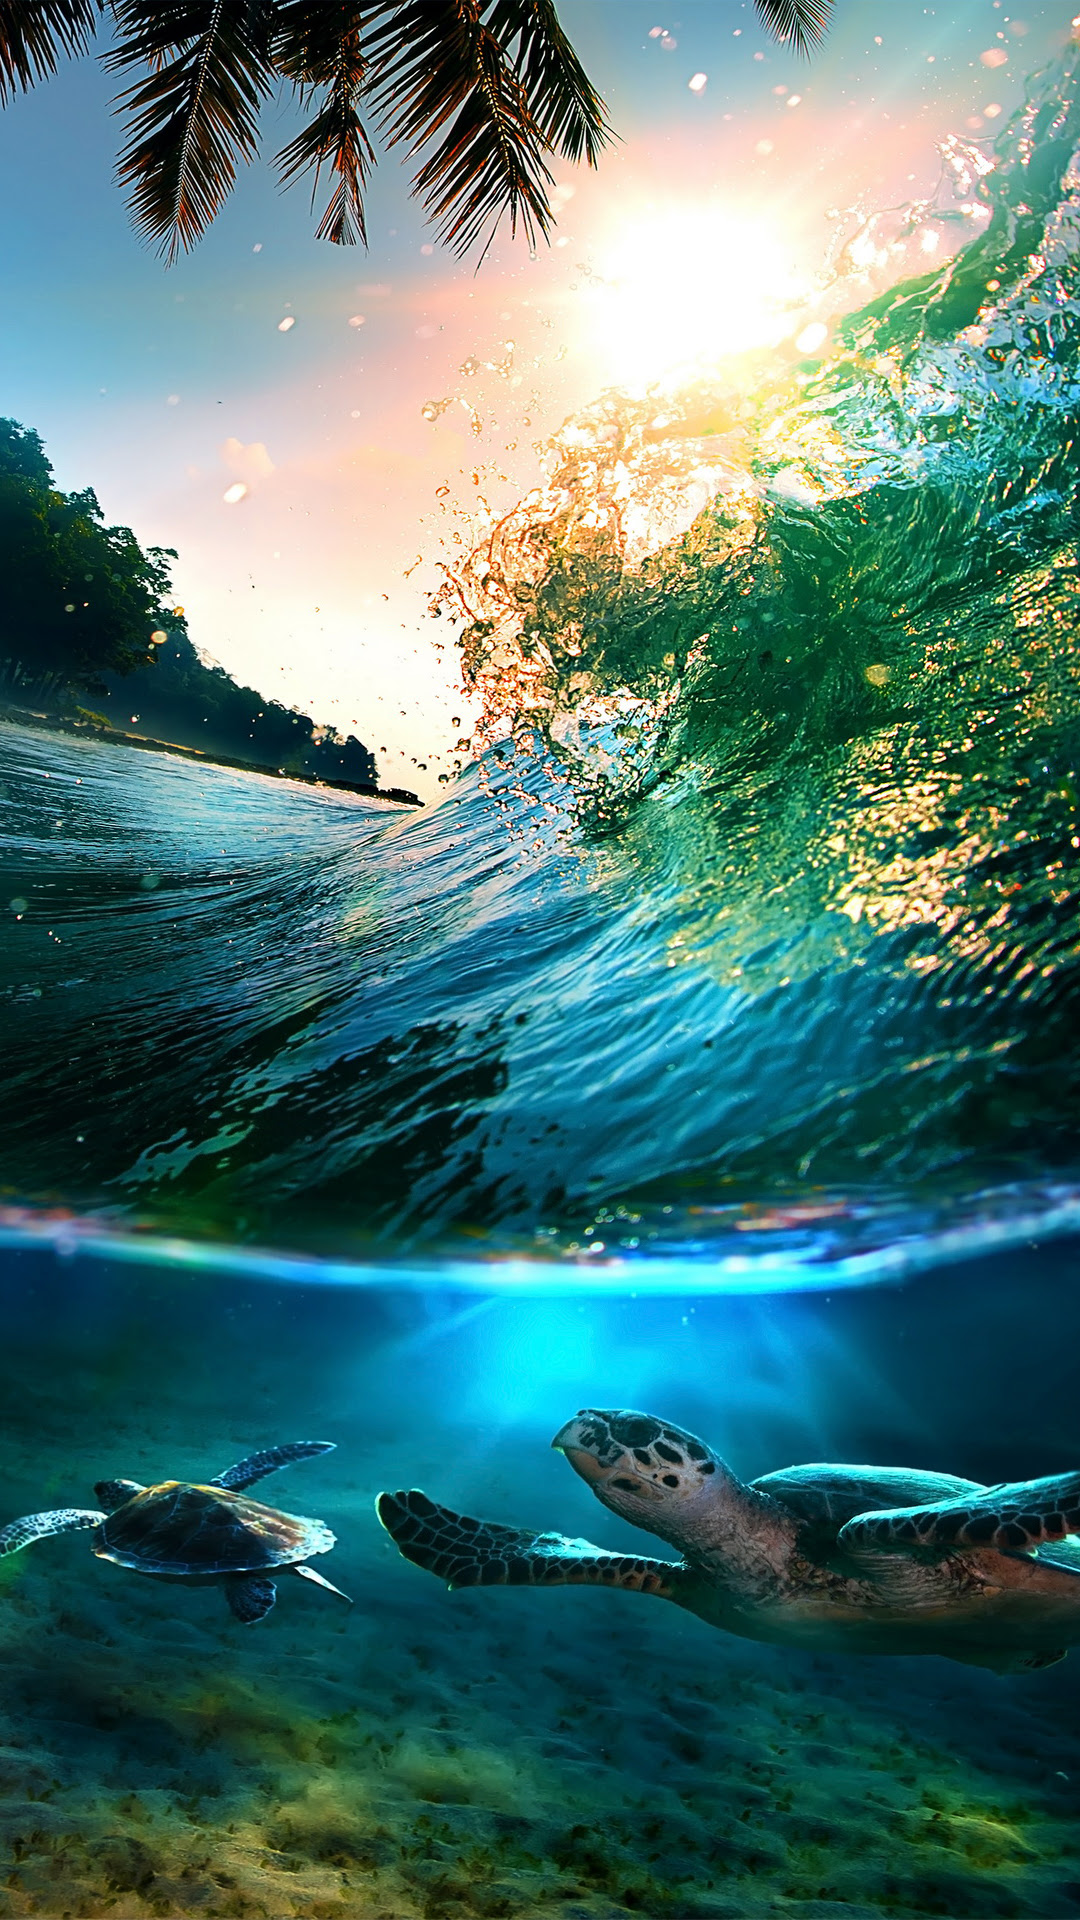 Tropical Sea Island Turtles - Best htc one wallpapers